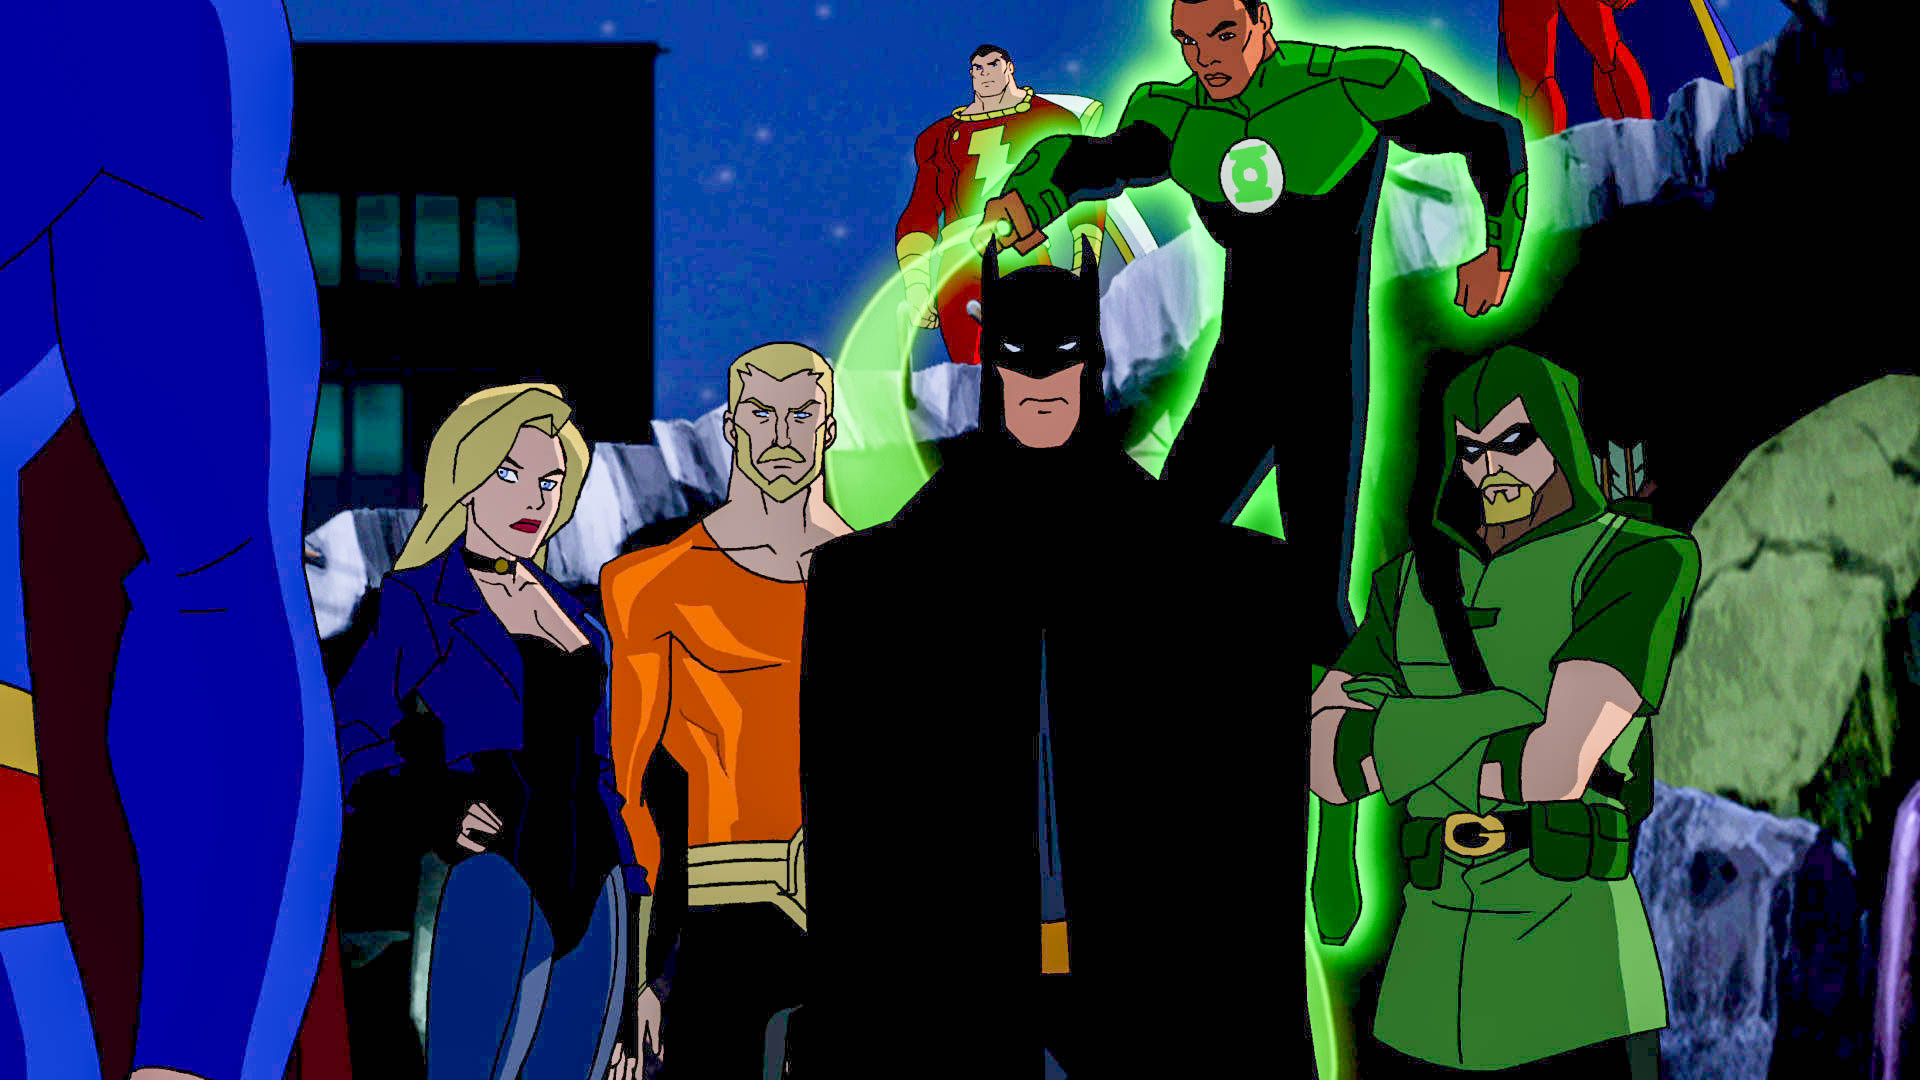 Animated Hd Wallpapers For Pc Full Screen Young Justice 2016 Animated Hd Wallpapers